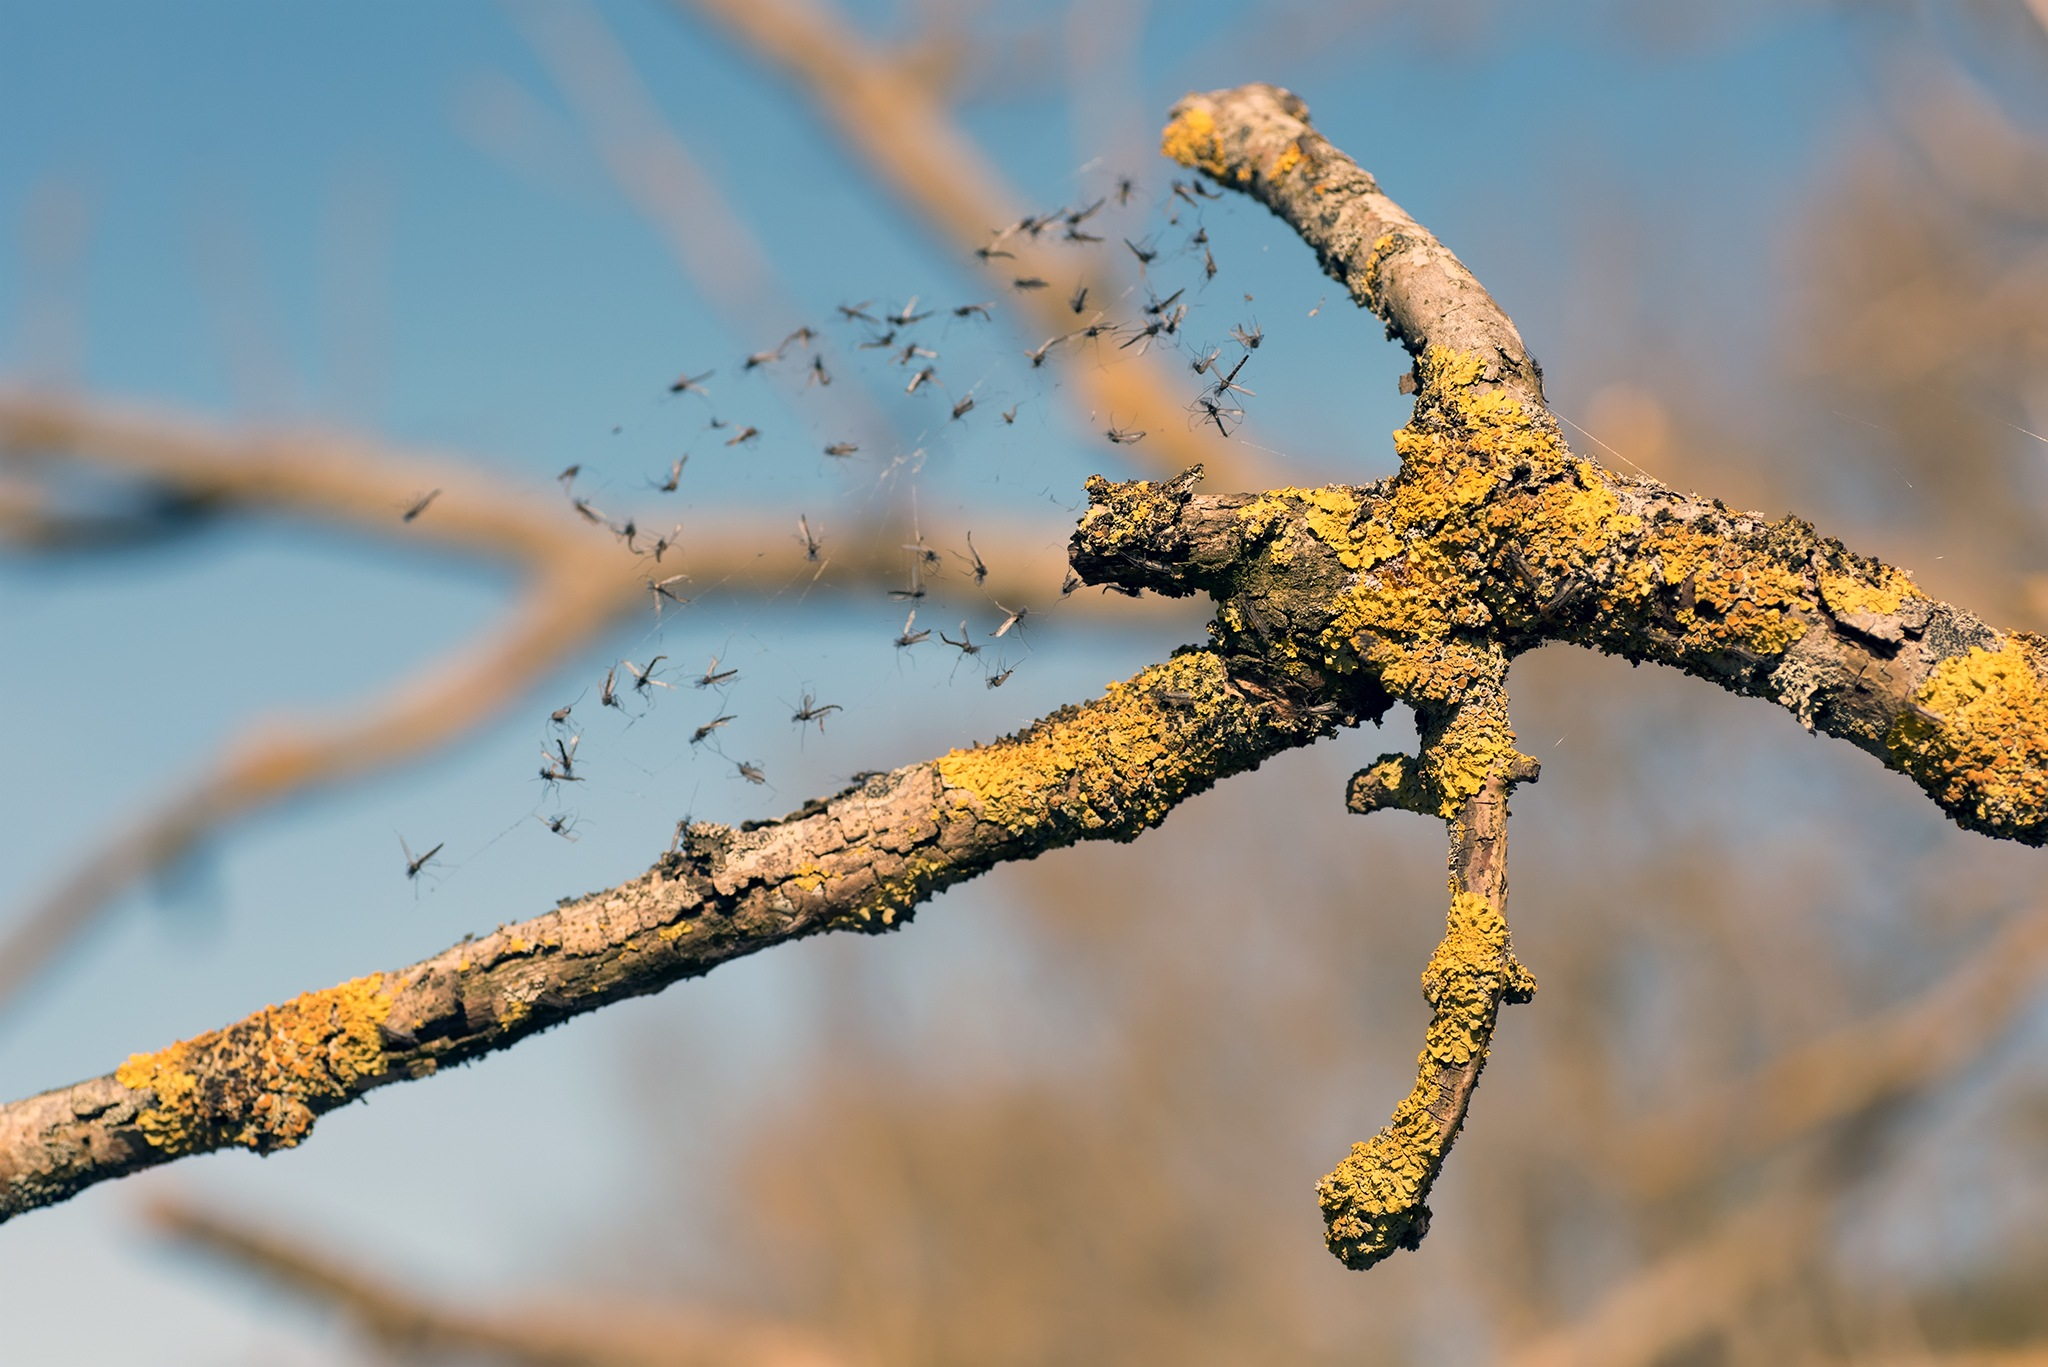 Branch with spider by per f andersen